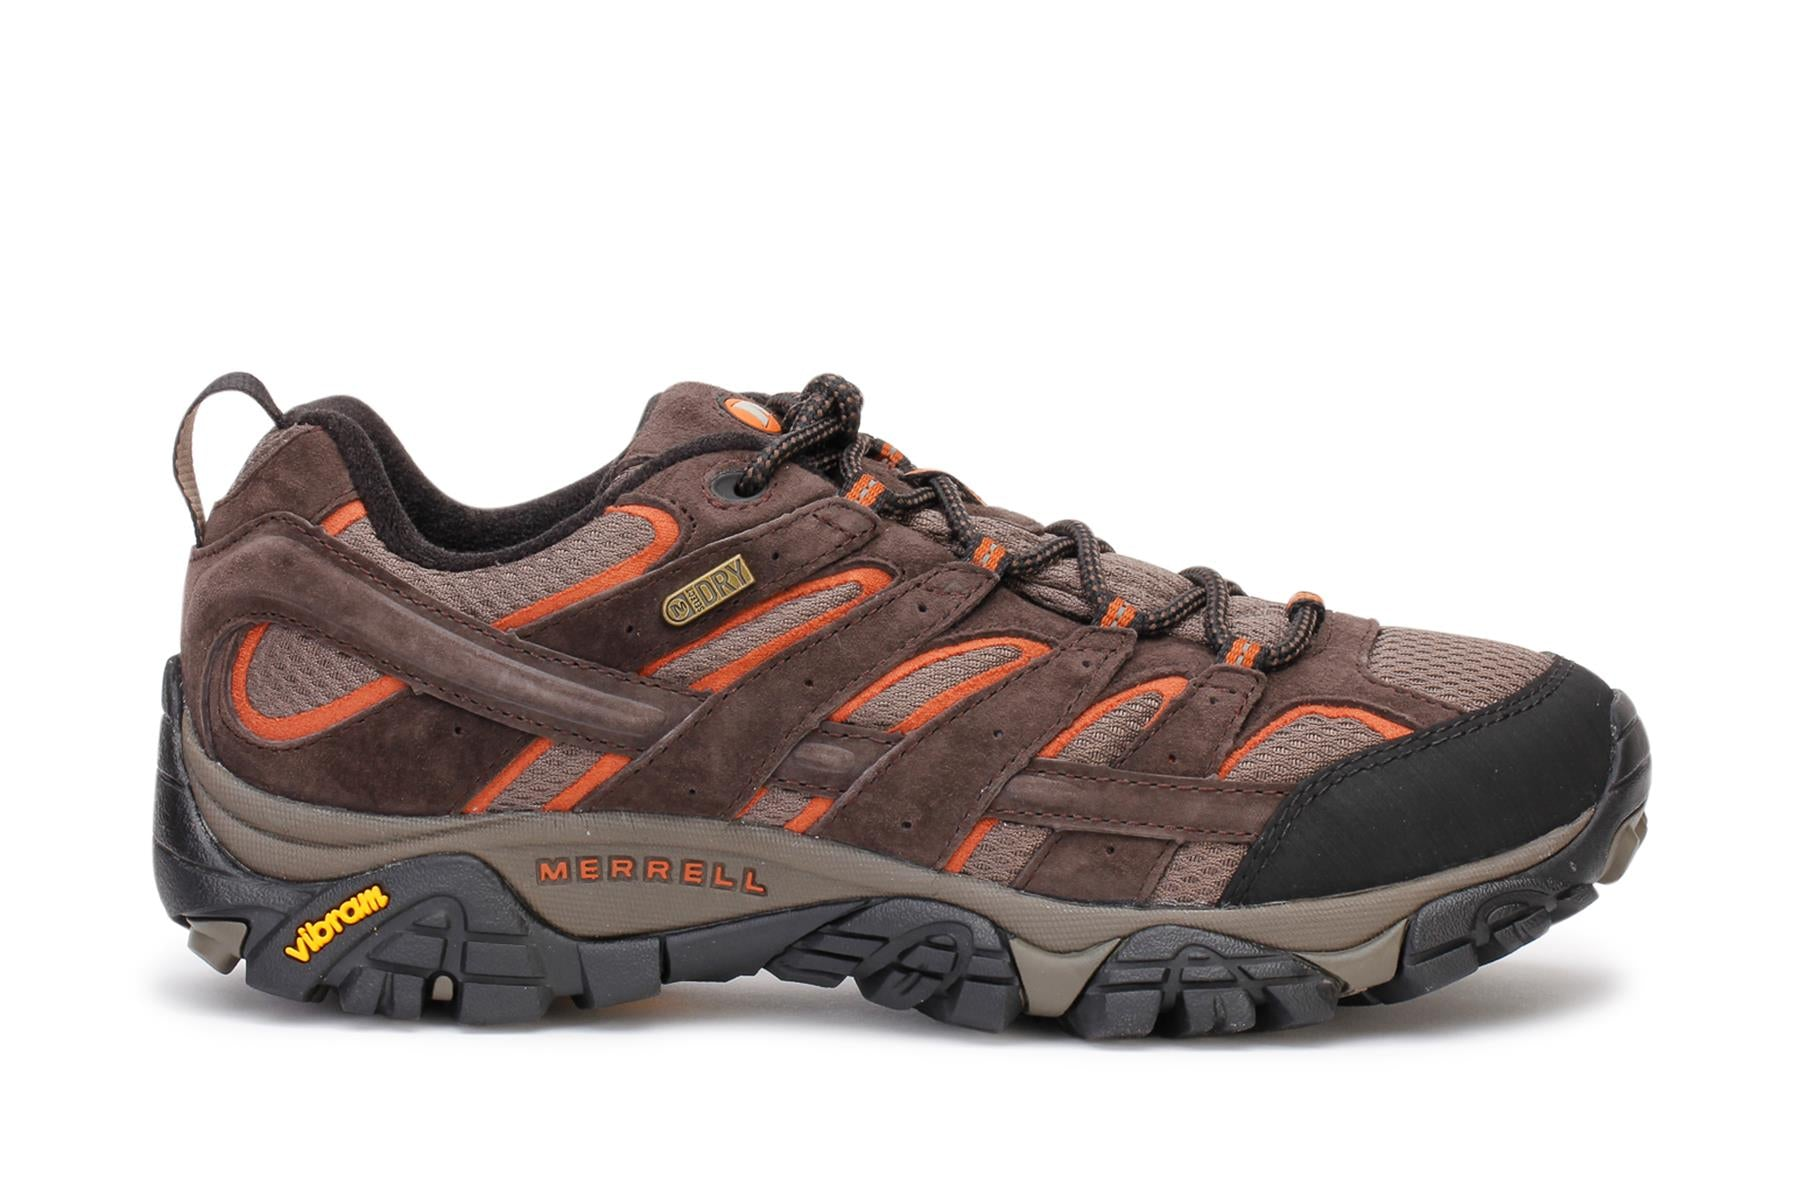 merrell-mens-shoes-moab-2-waterproof-espresso-j06027-main